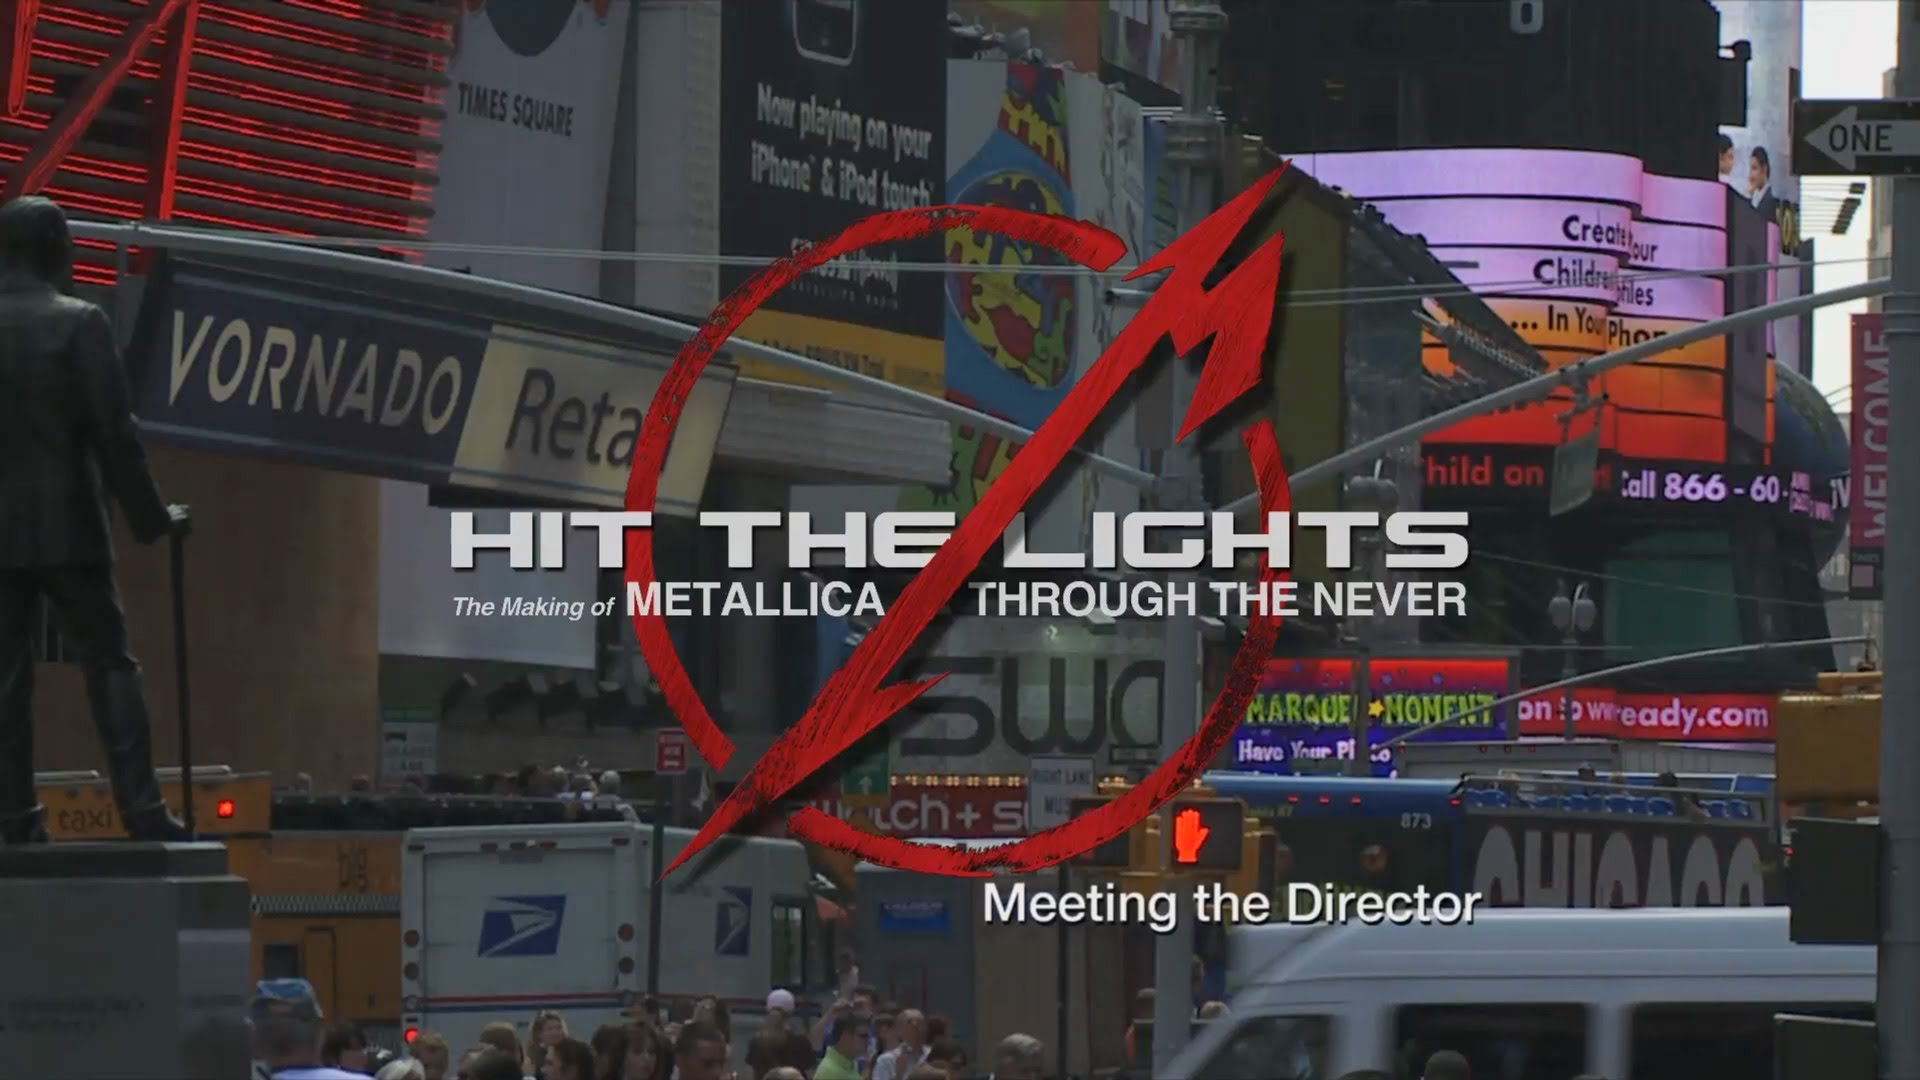 Hit the Lights The Making of Metallica Through the Never - Chapter 6 Meeting the Director